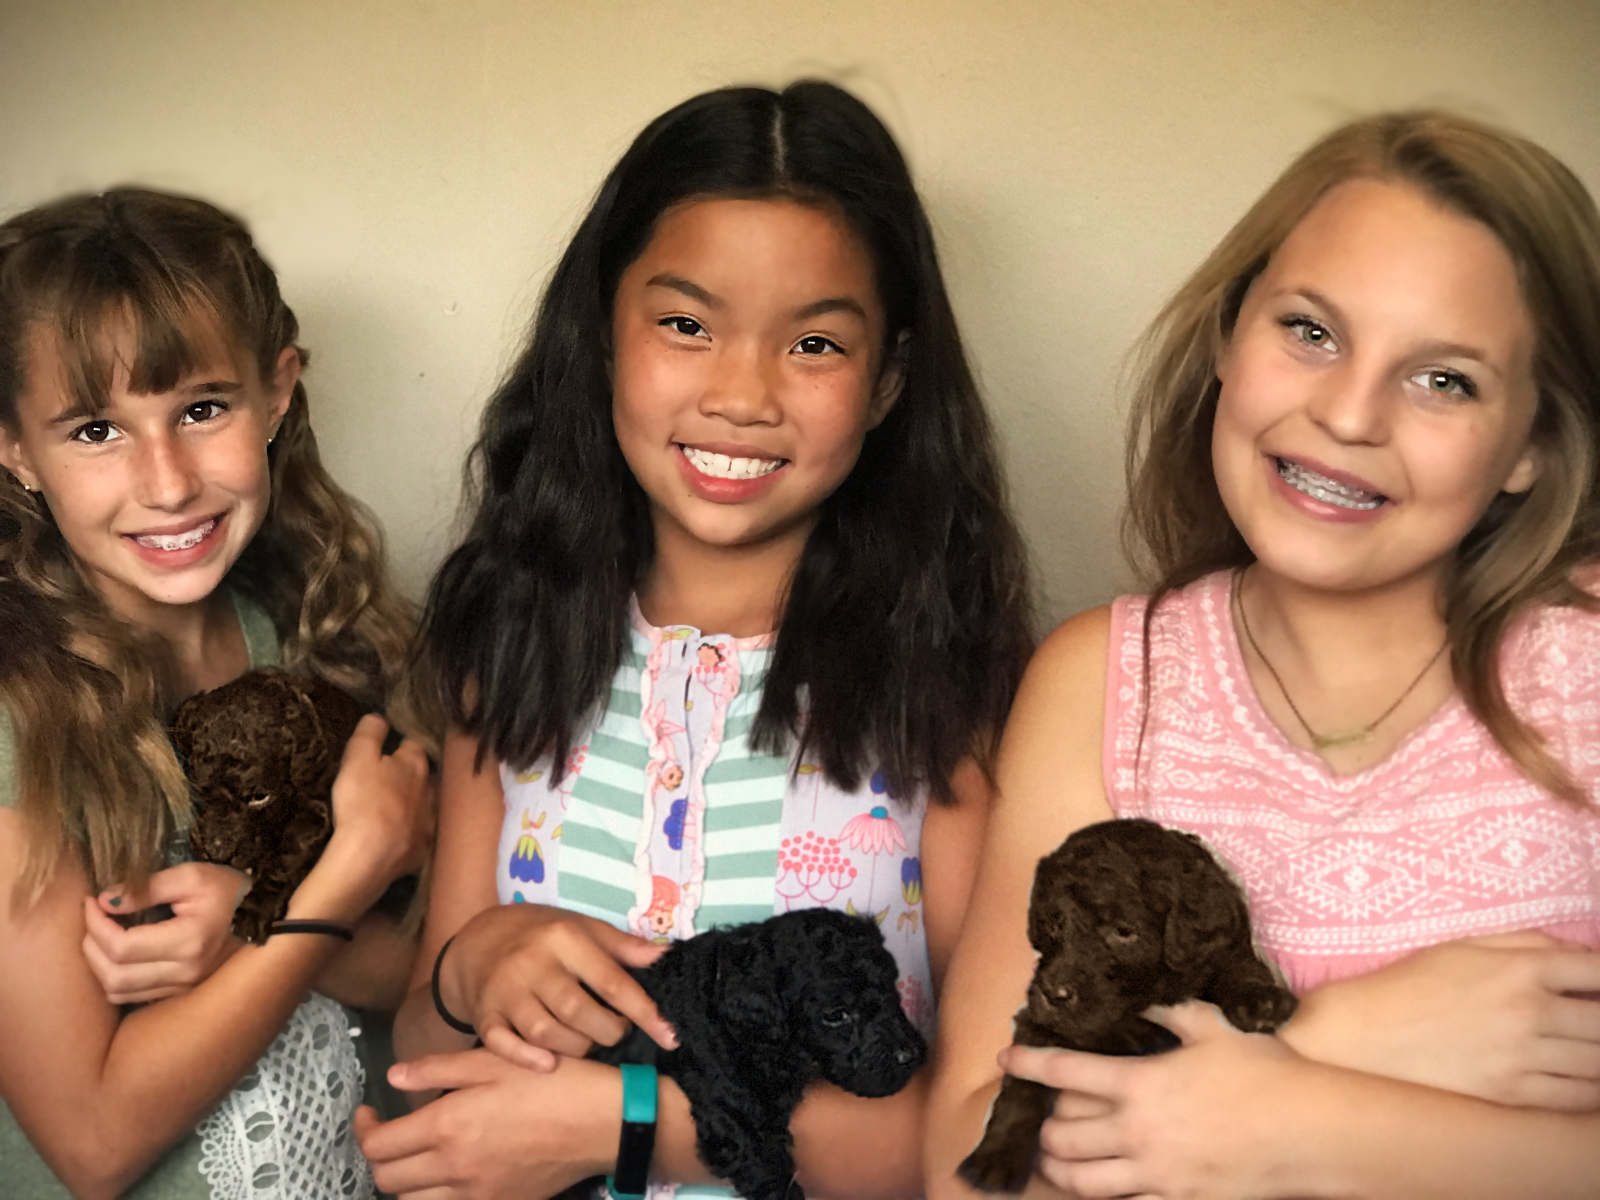 girls_holding_pups_standard_poodle_puppies.jpg